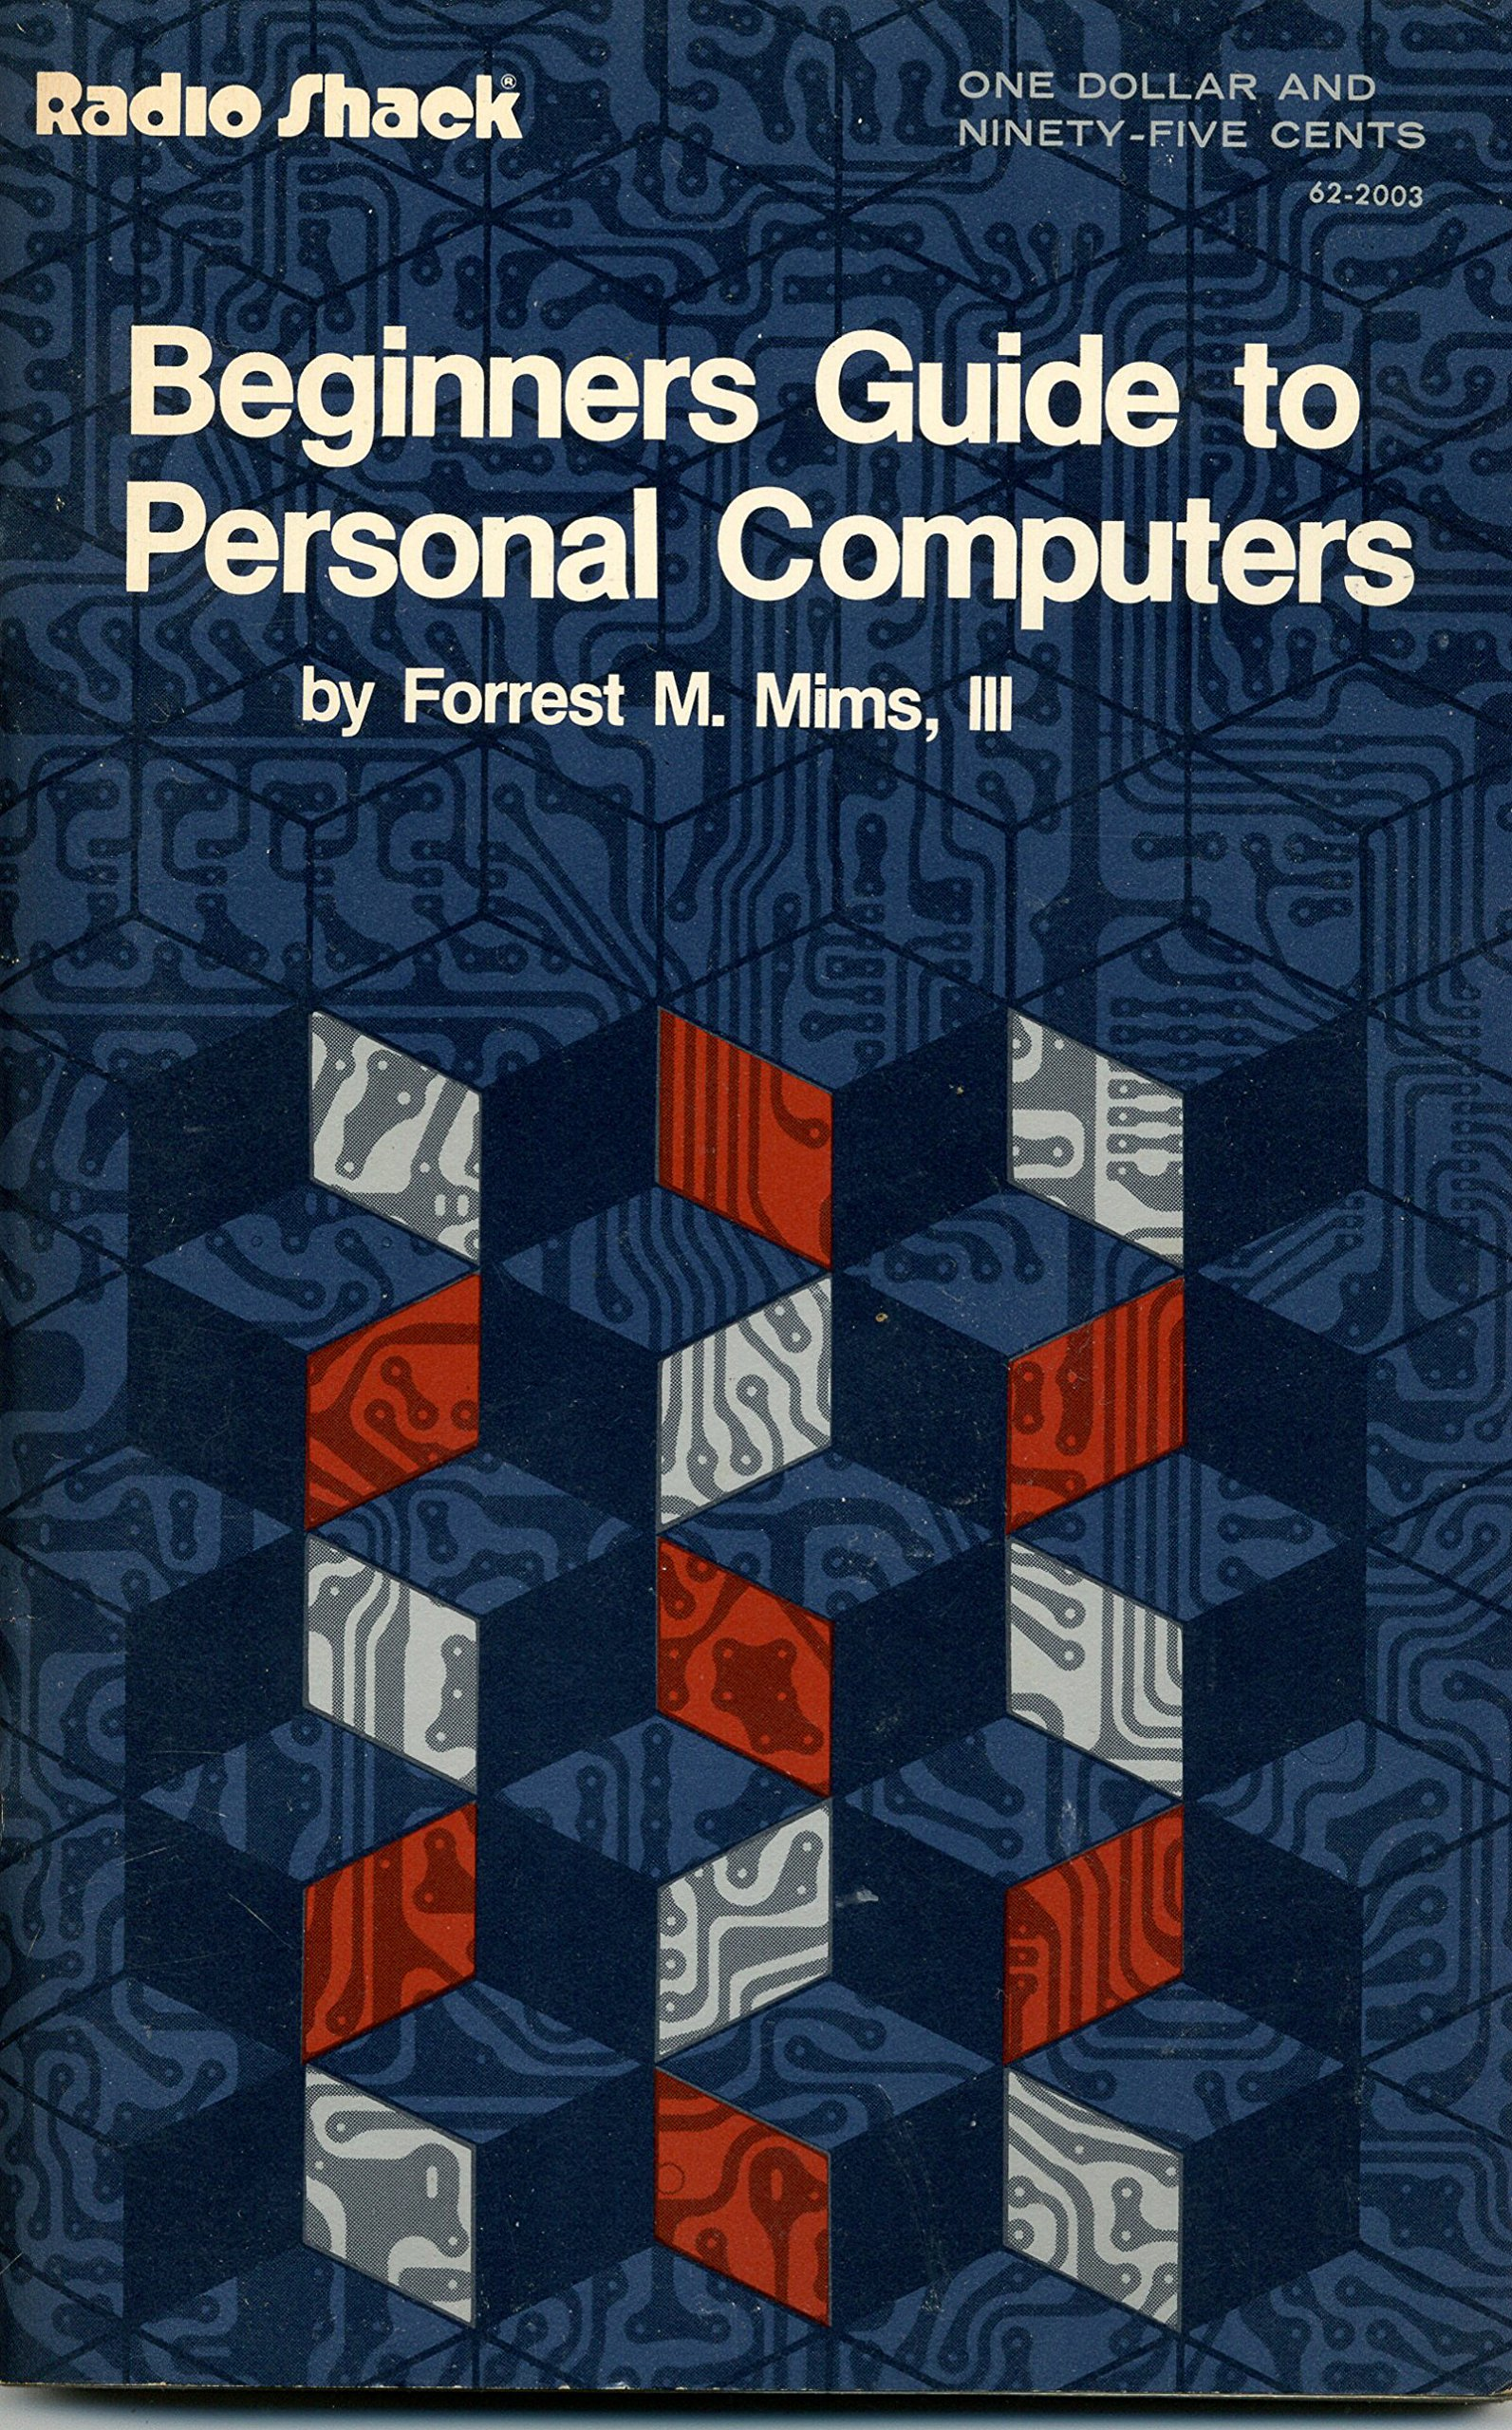 Beginners guide to personal computers, Mims, Forrest M. Radio Shack.